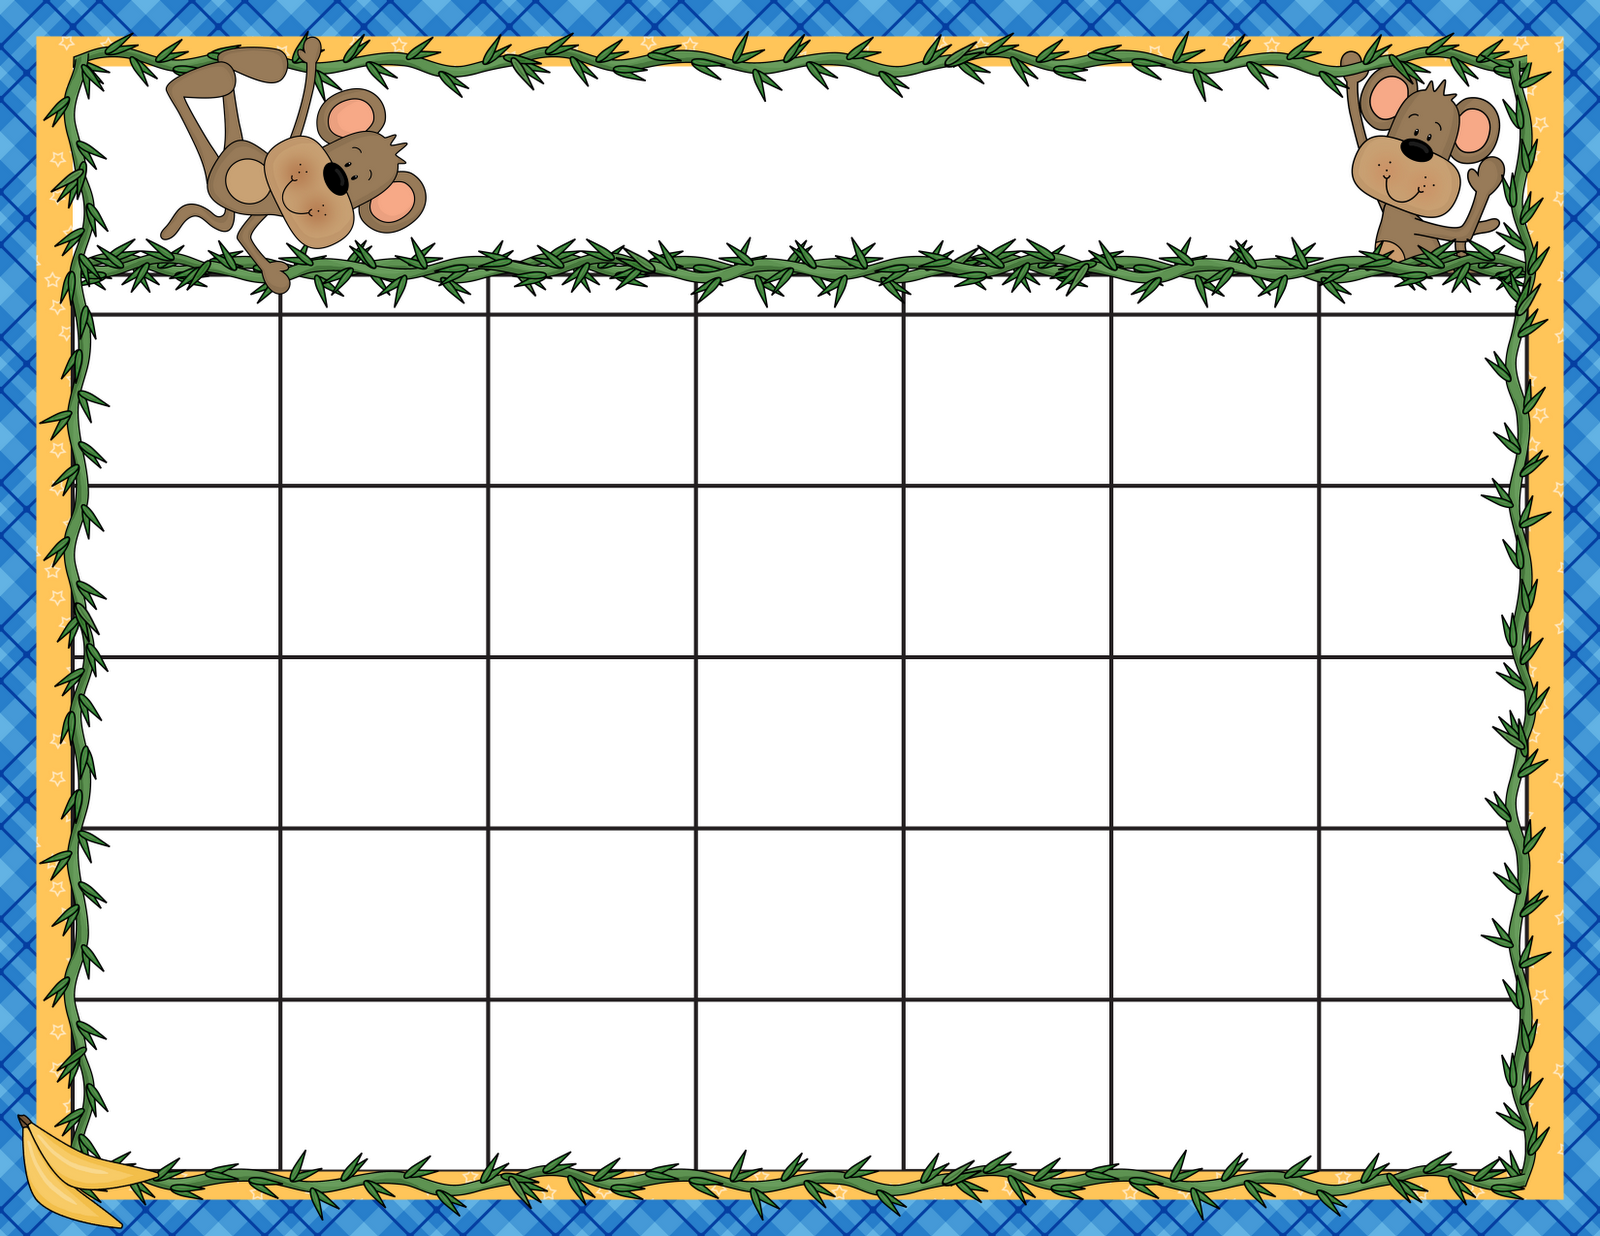 Calendar Design For Preschool : Little adventures preschool calendar and plans